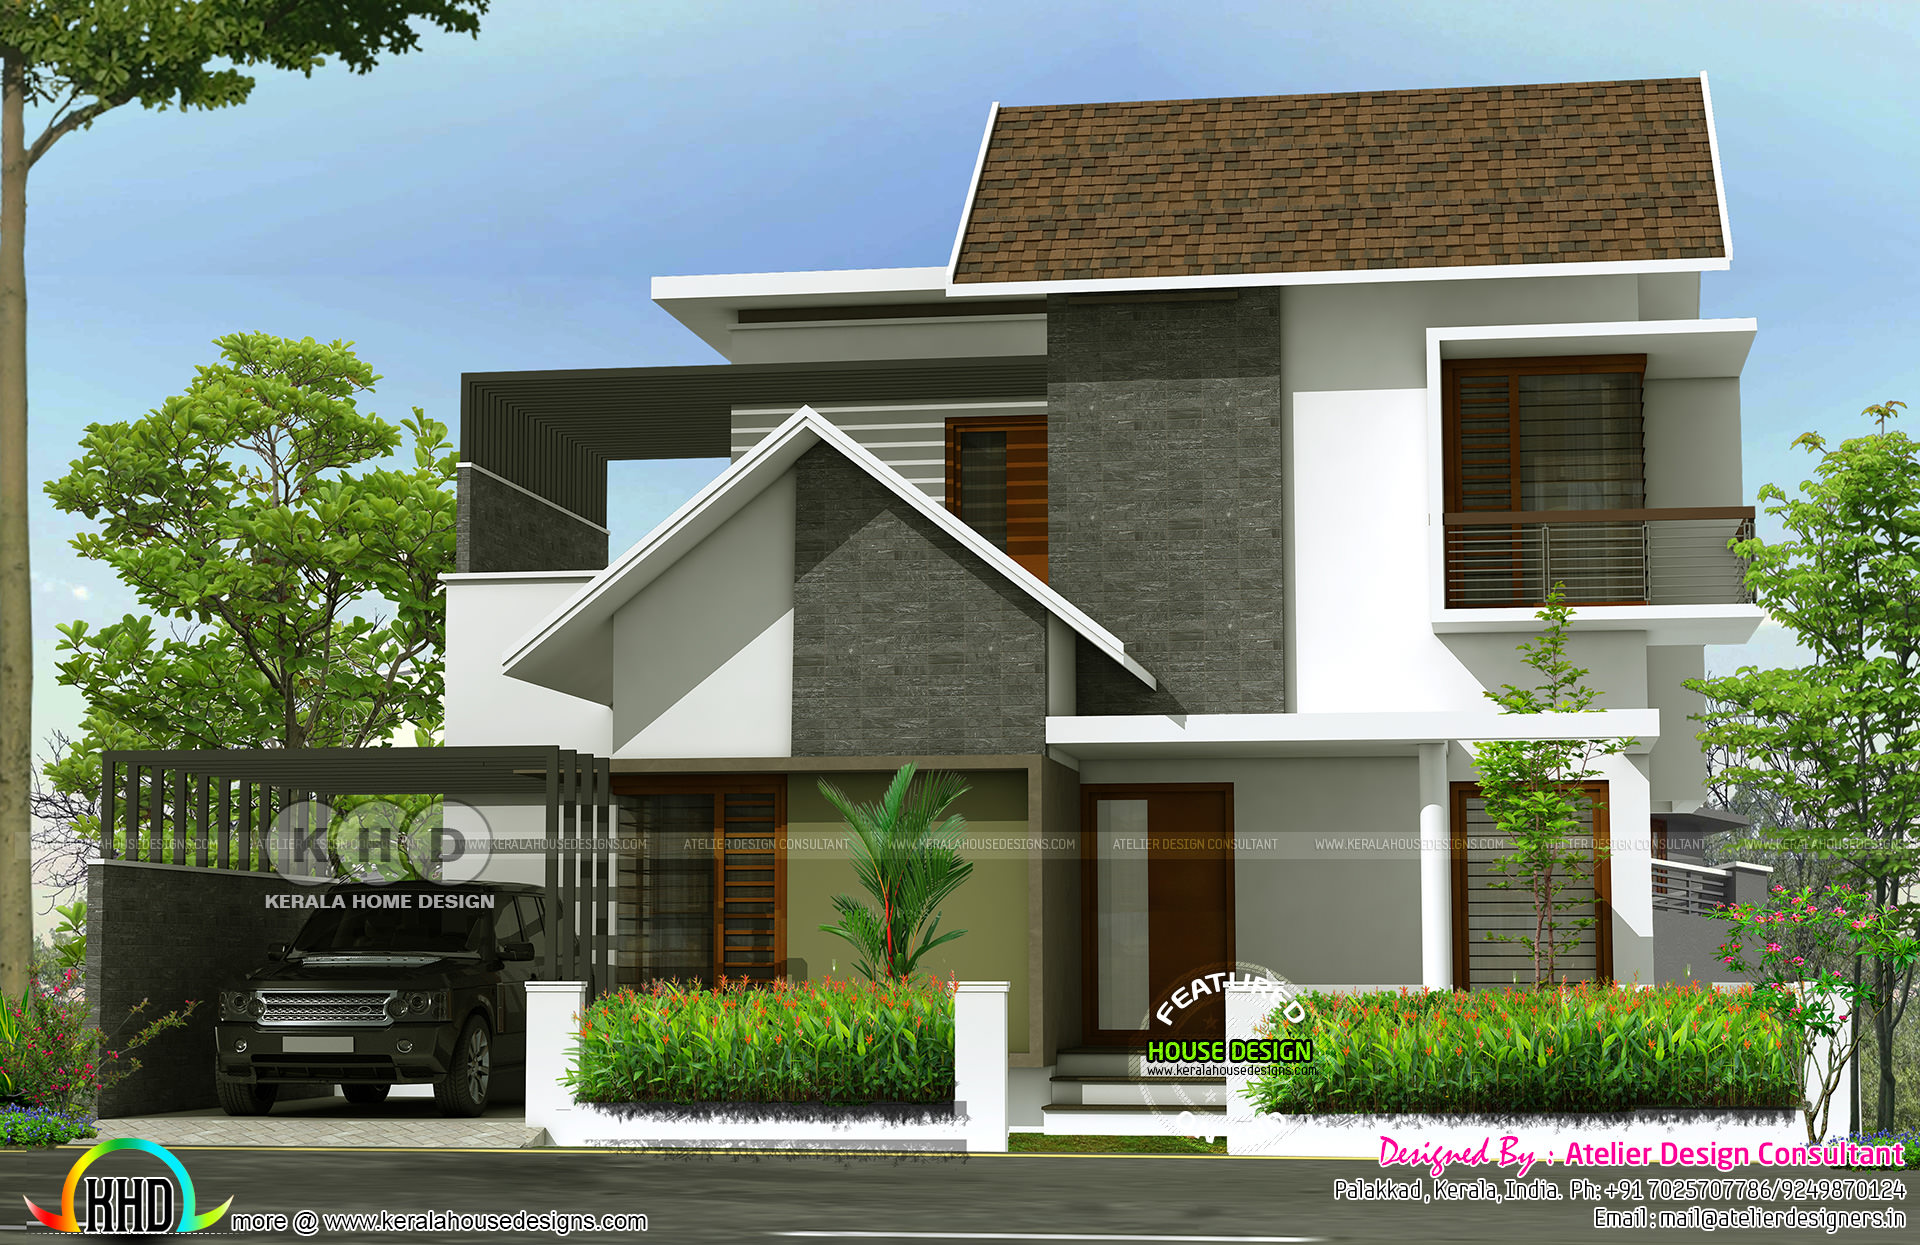 Modern sloped roof 3 bedrooms in 1600 sq ft kerala home for Modern house plans for 1600 sq ft